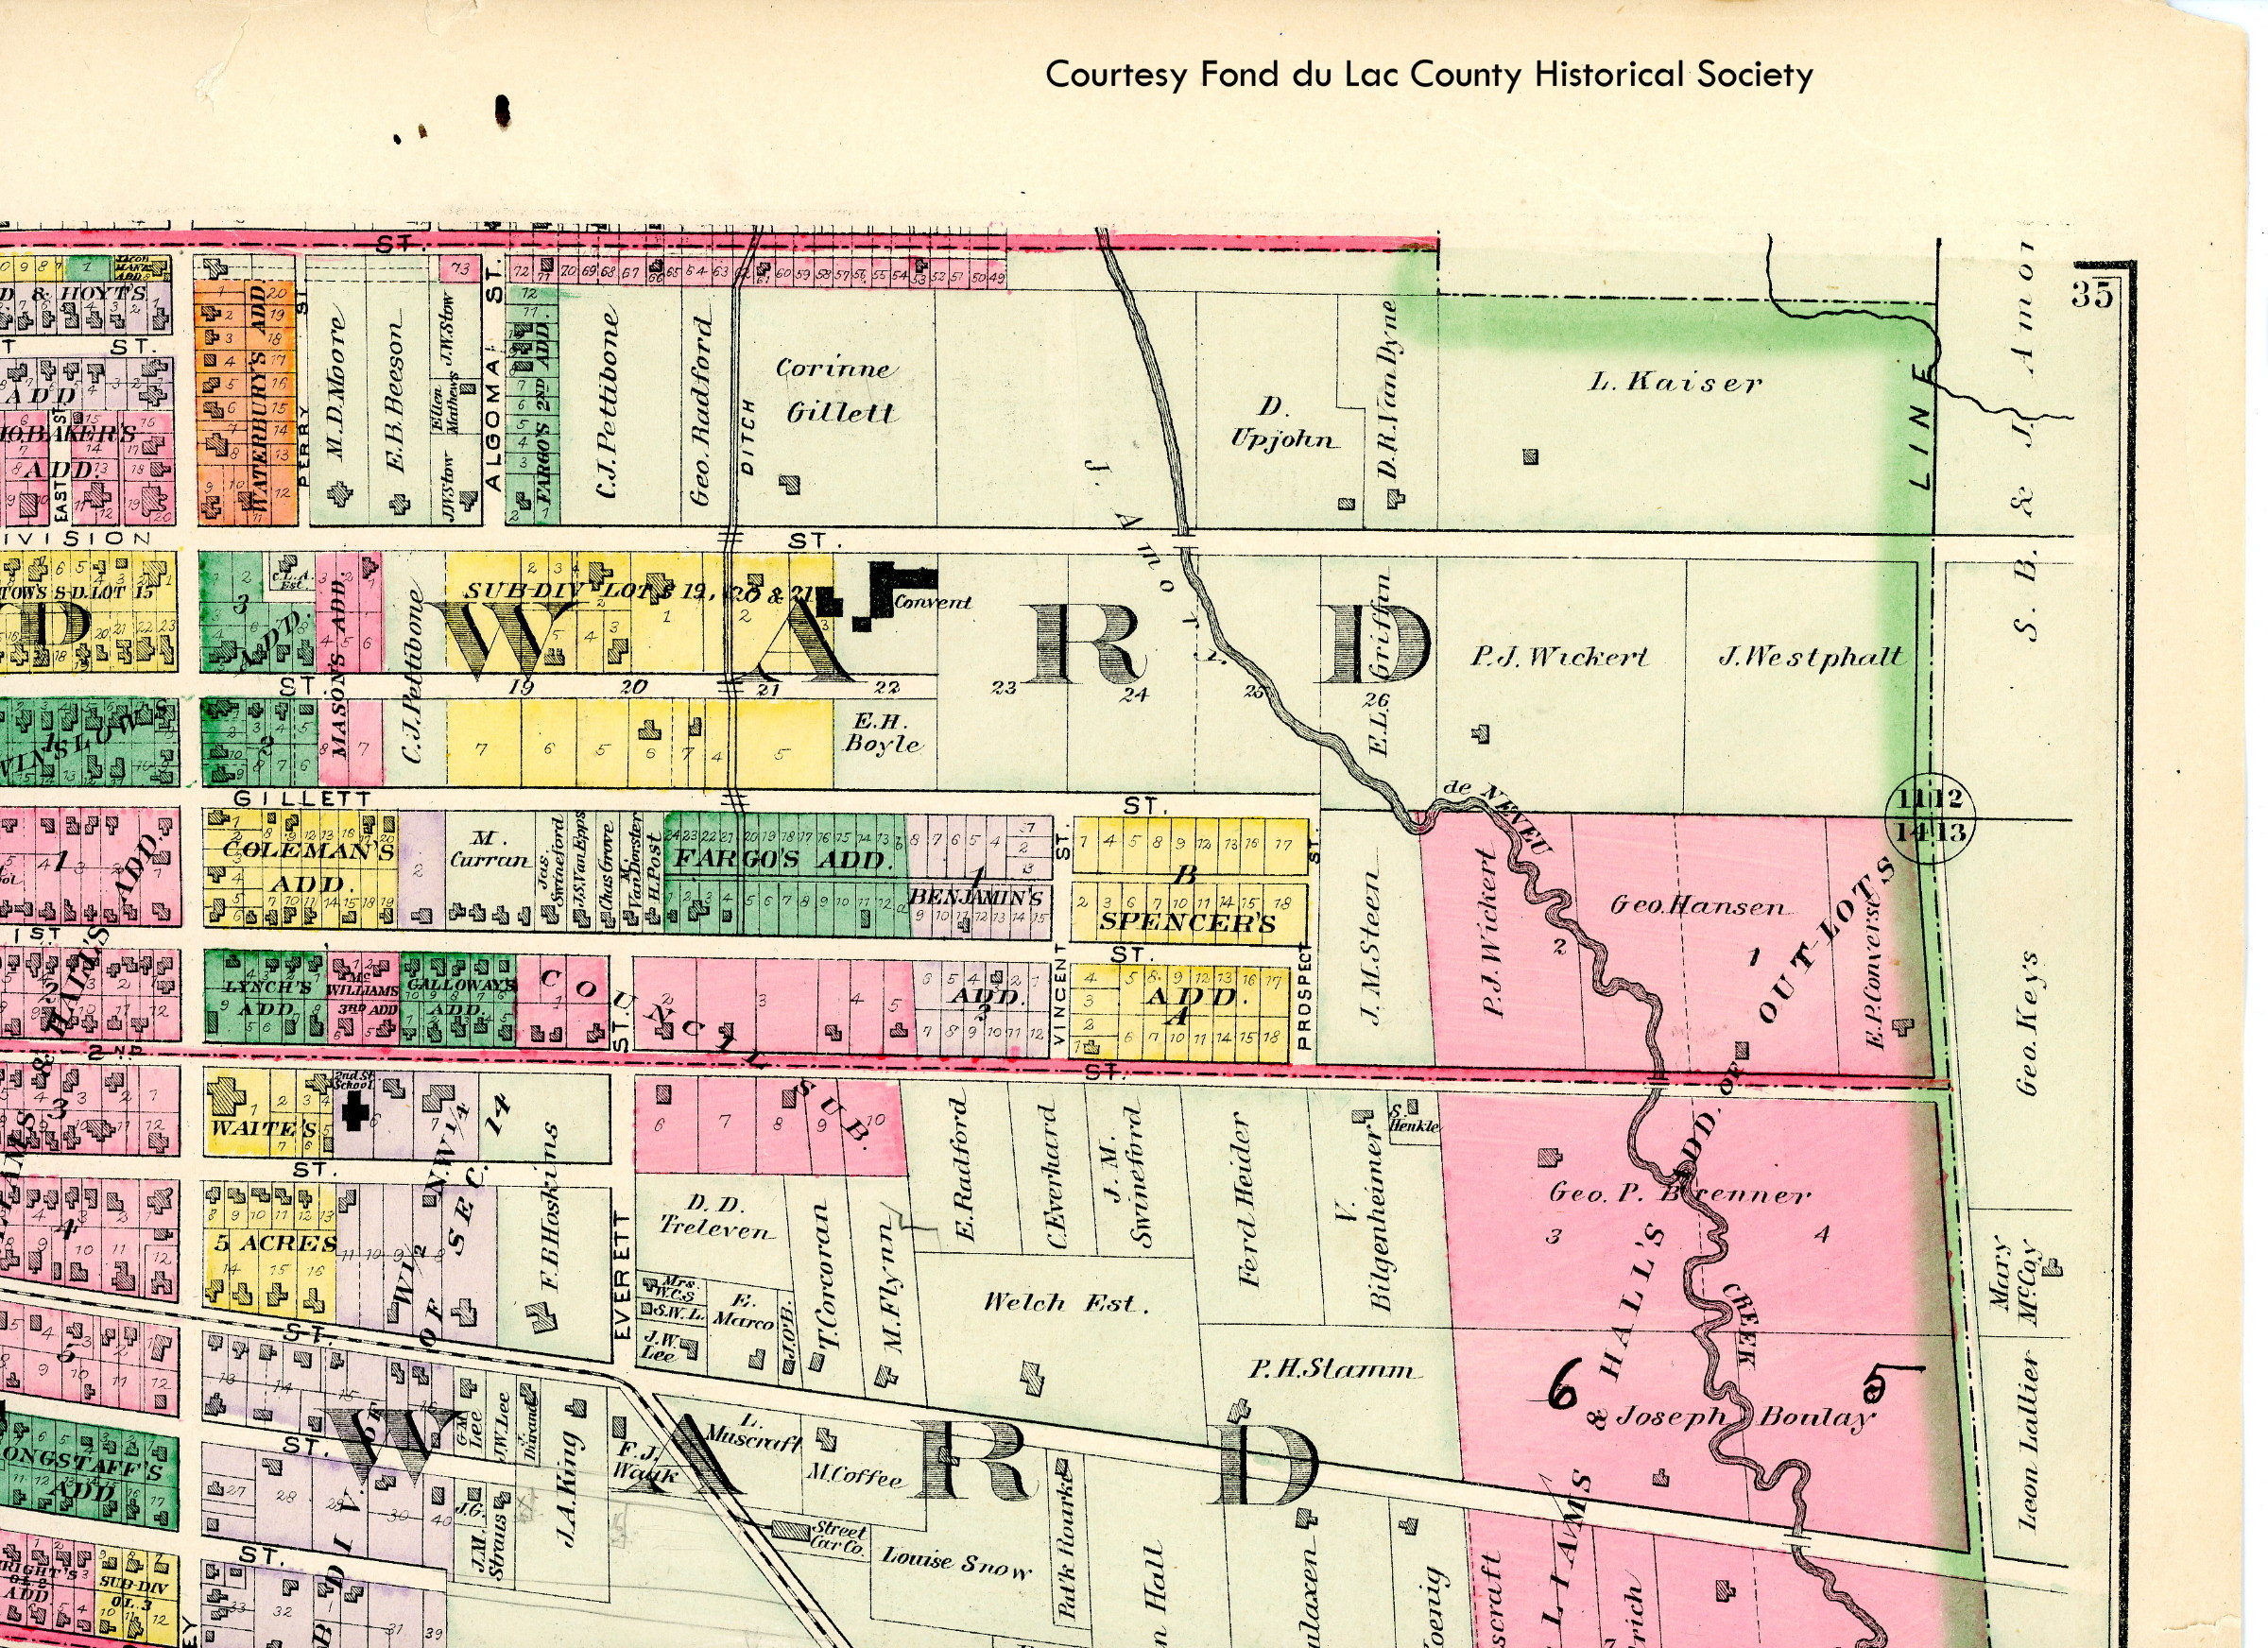 Plat map from 1874 showing the Sisters of St. Agnes Convent on Division Street